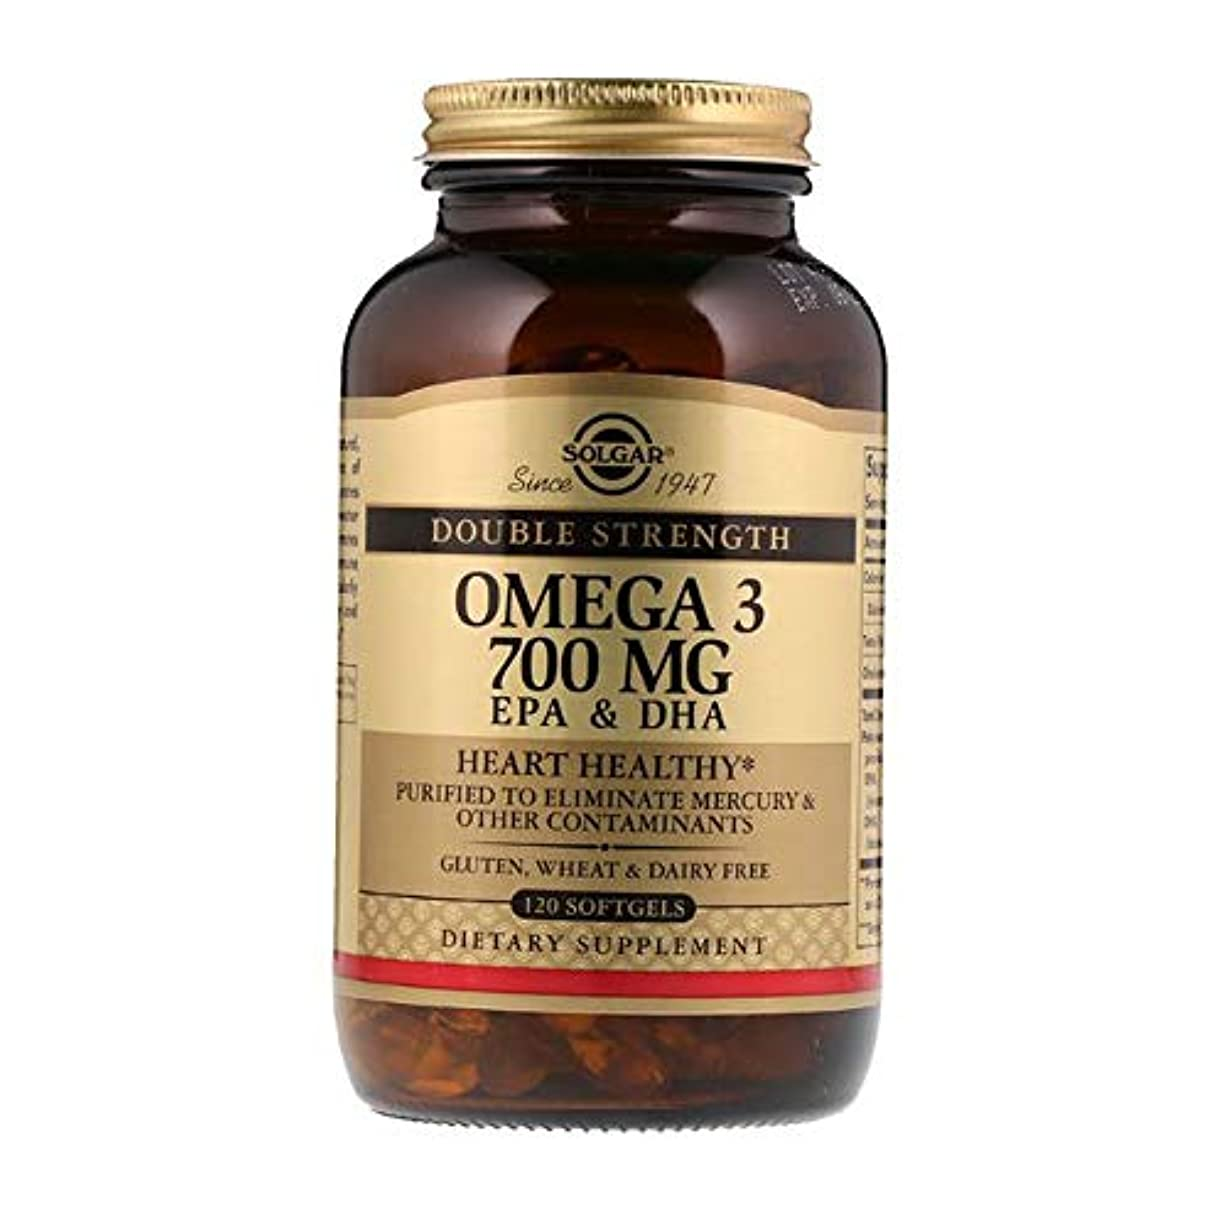 Solgar Omega 3 EPA DHA Double Strength 700mg 120 Softgels 【アメリカ直送】